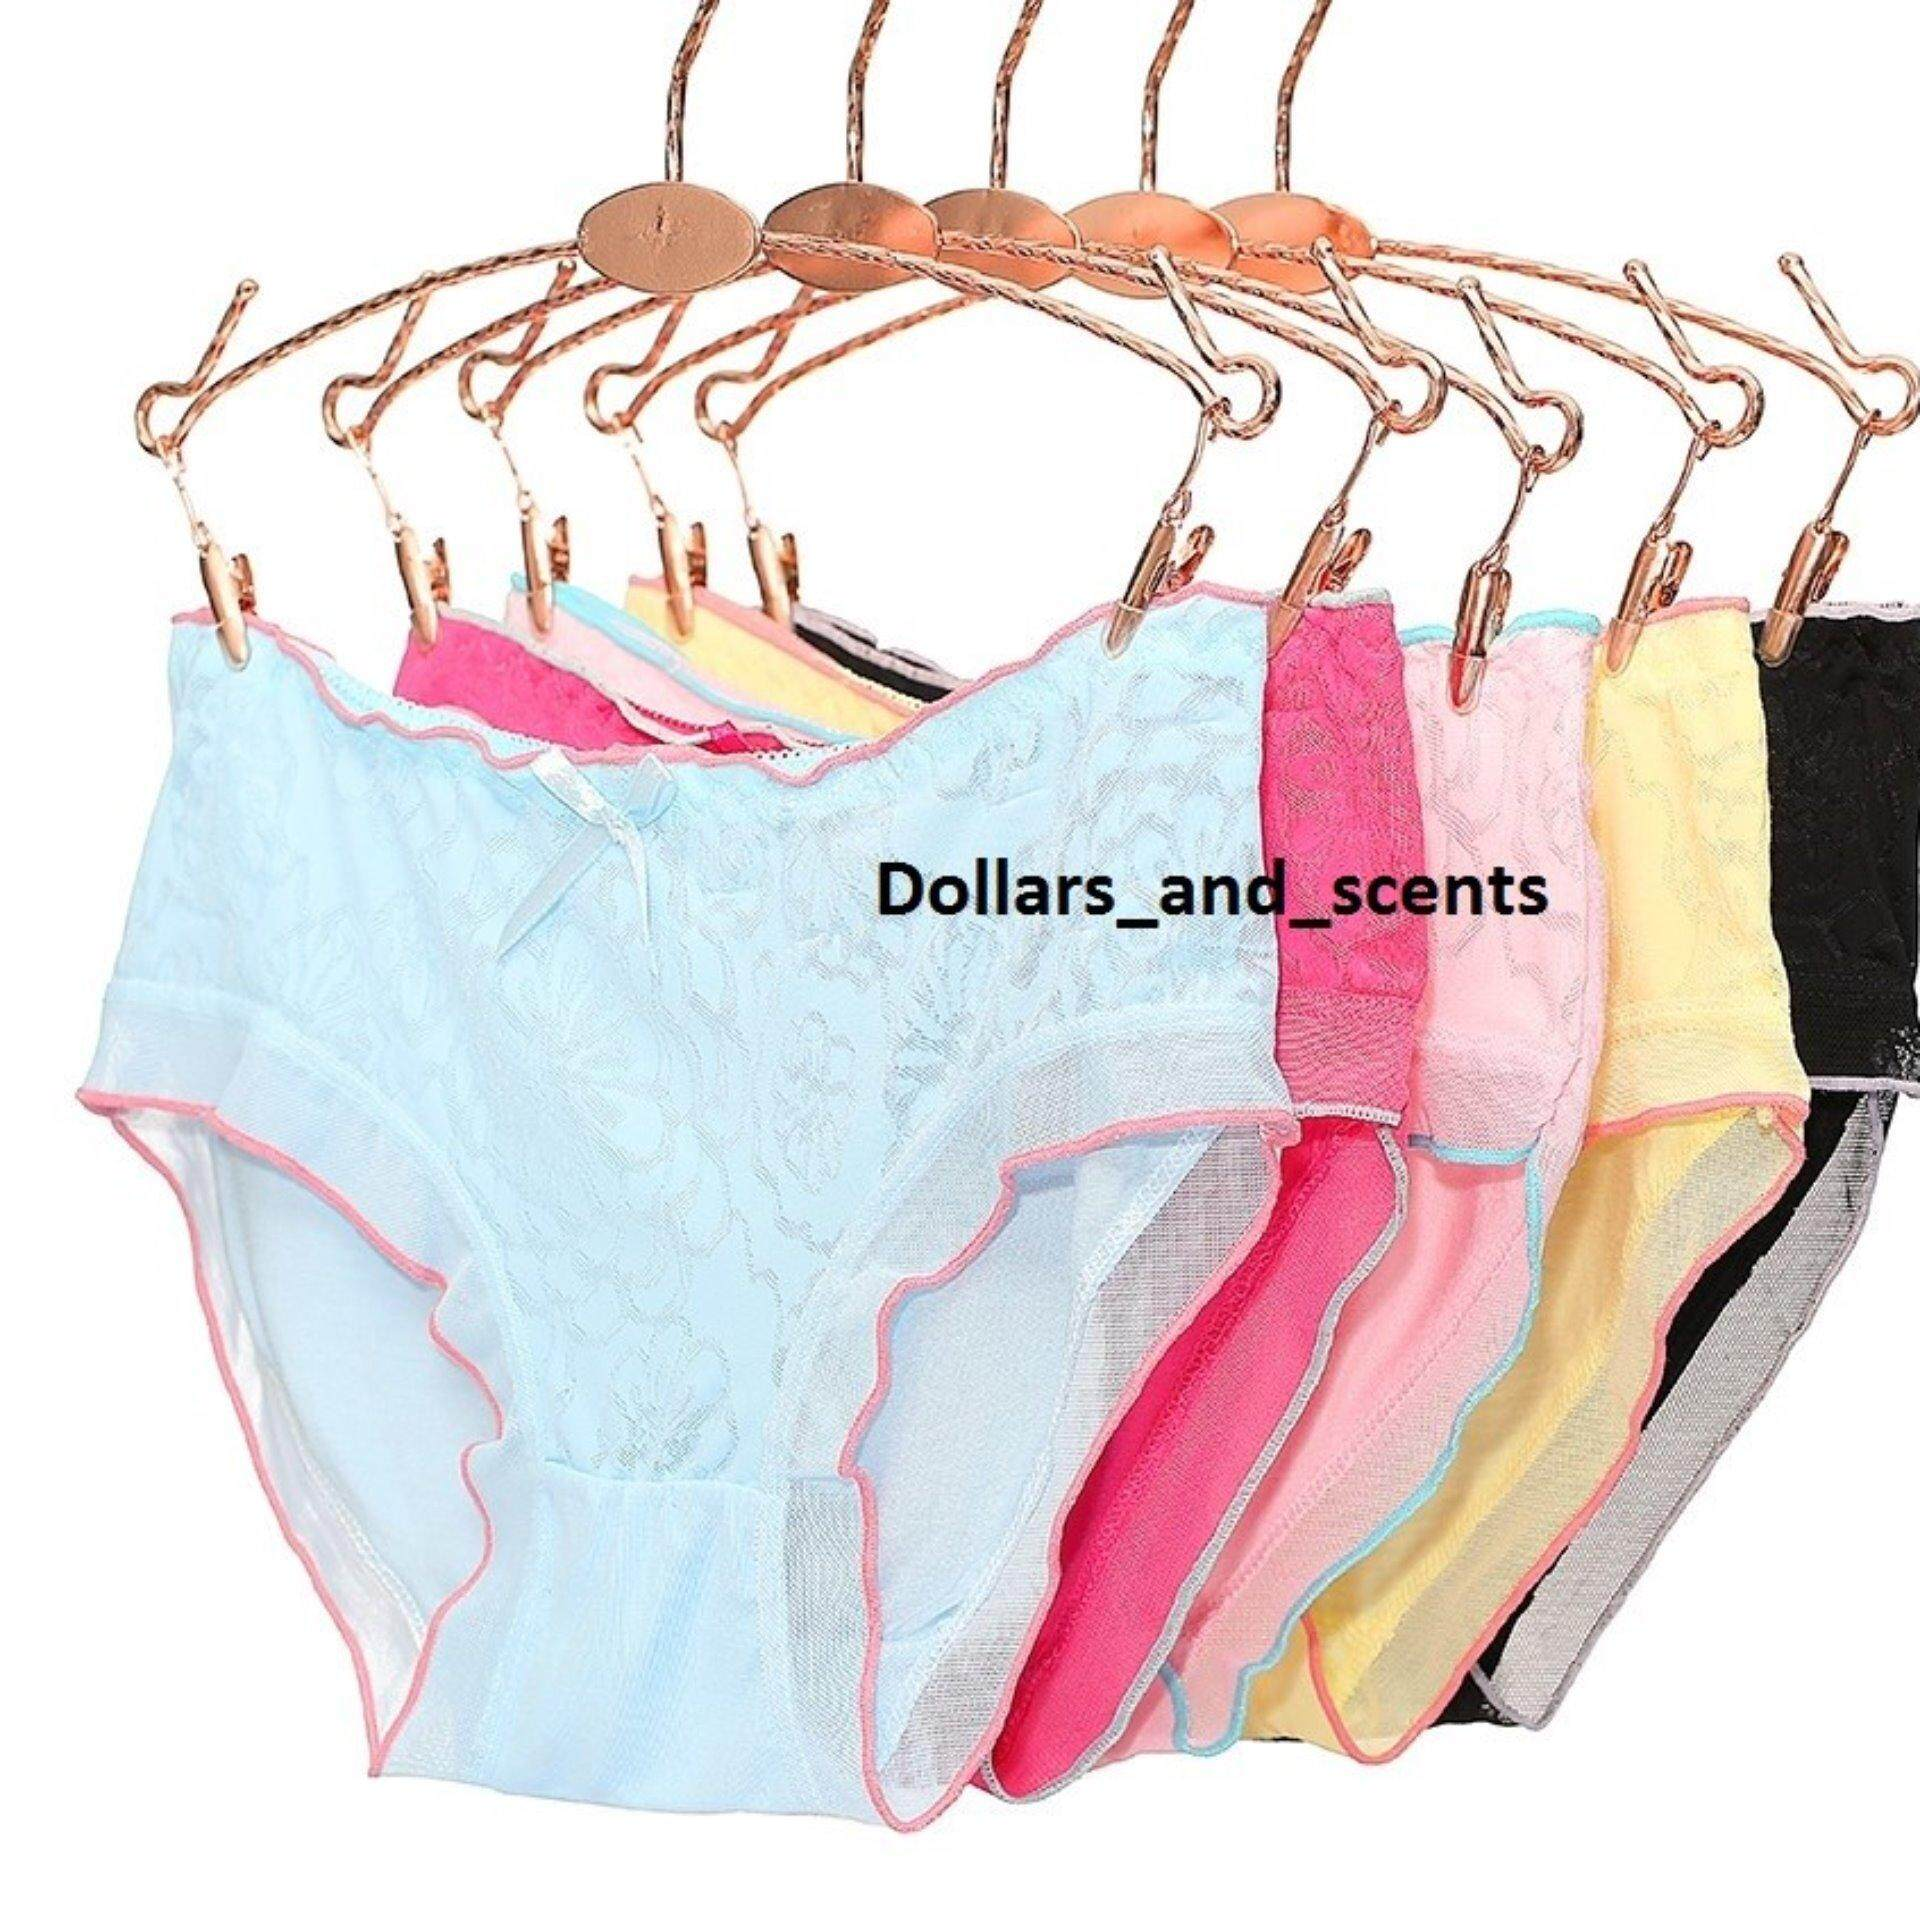 20x Stretchable Organic Cotton Anti Odour Lace Panties - Clearance SALE Below cost